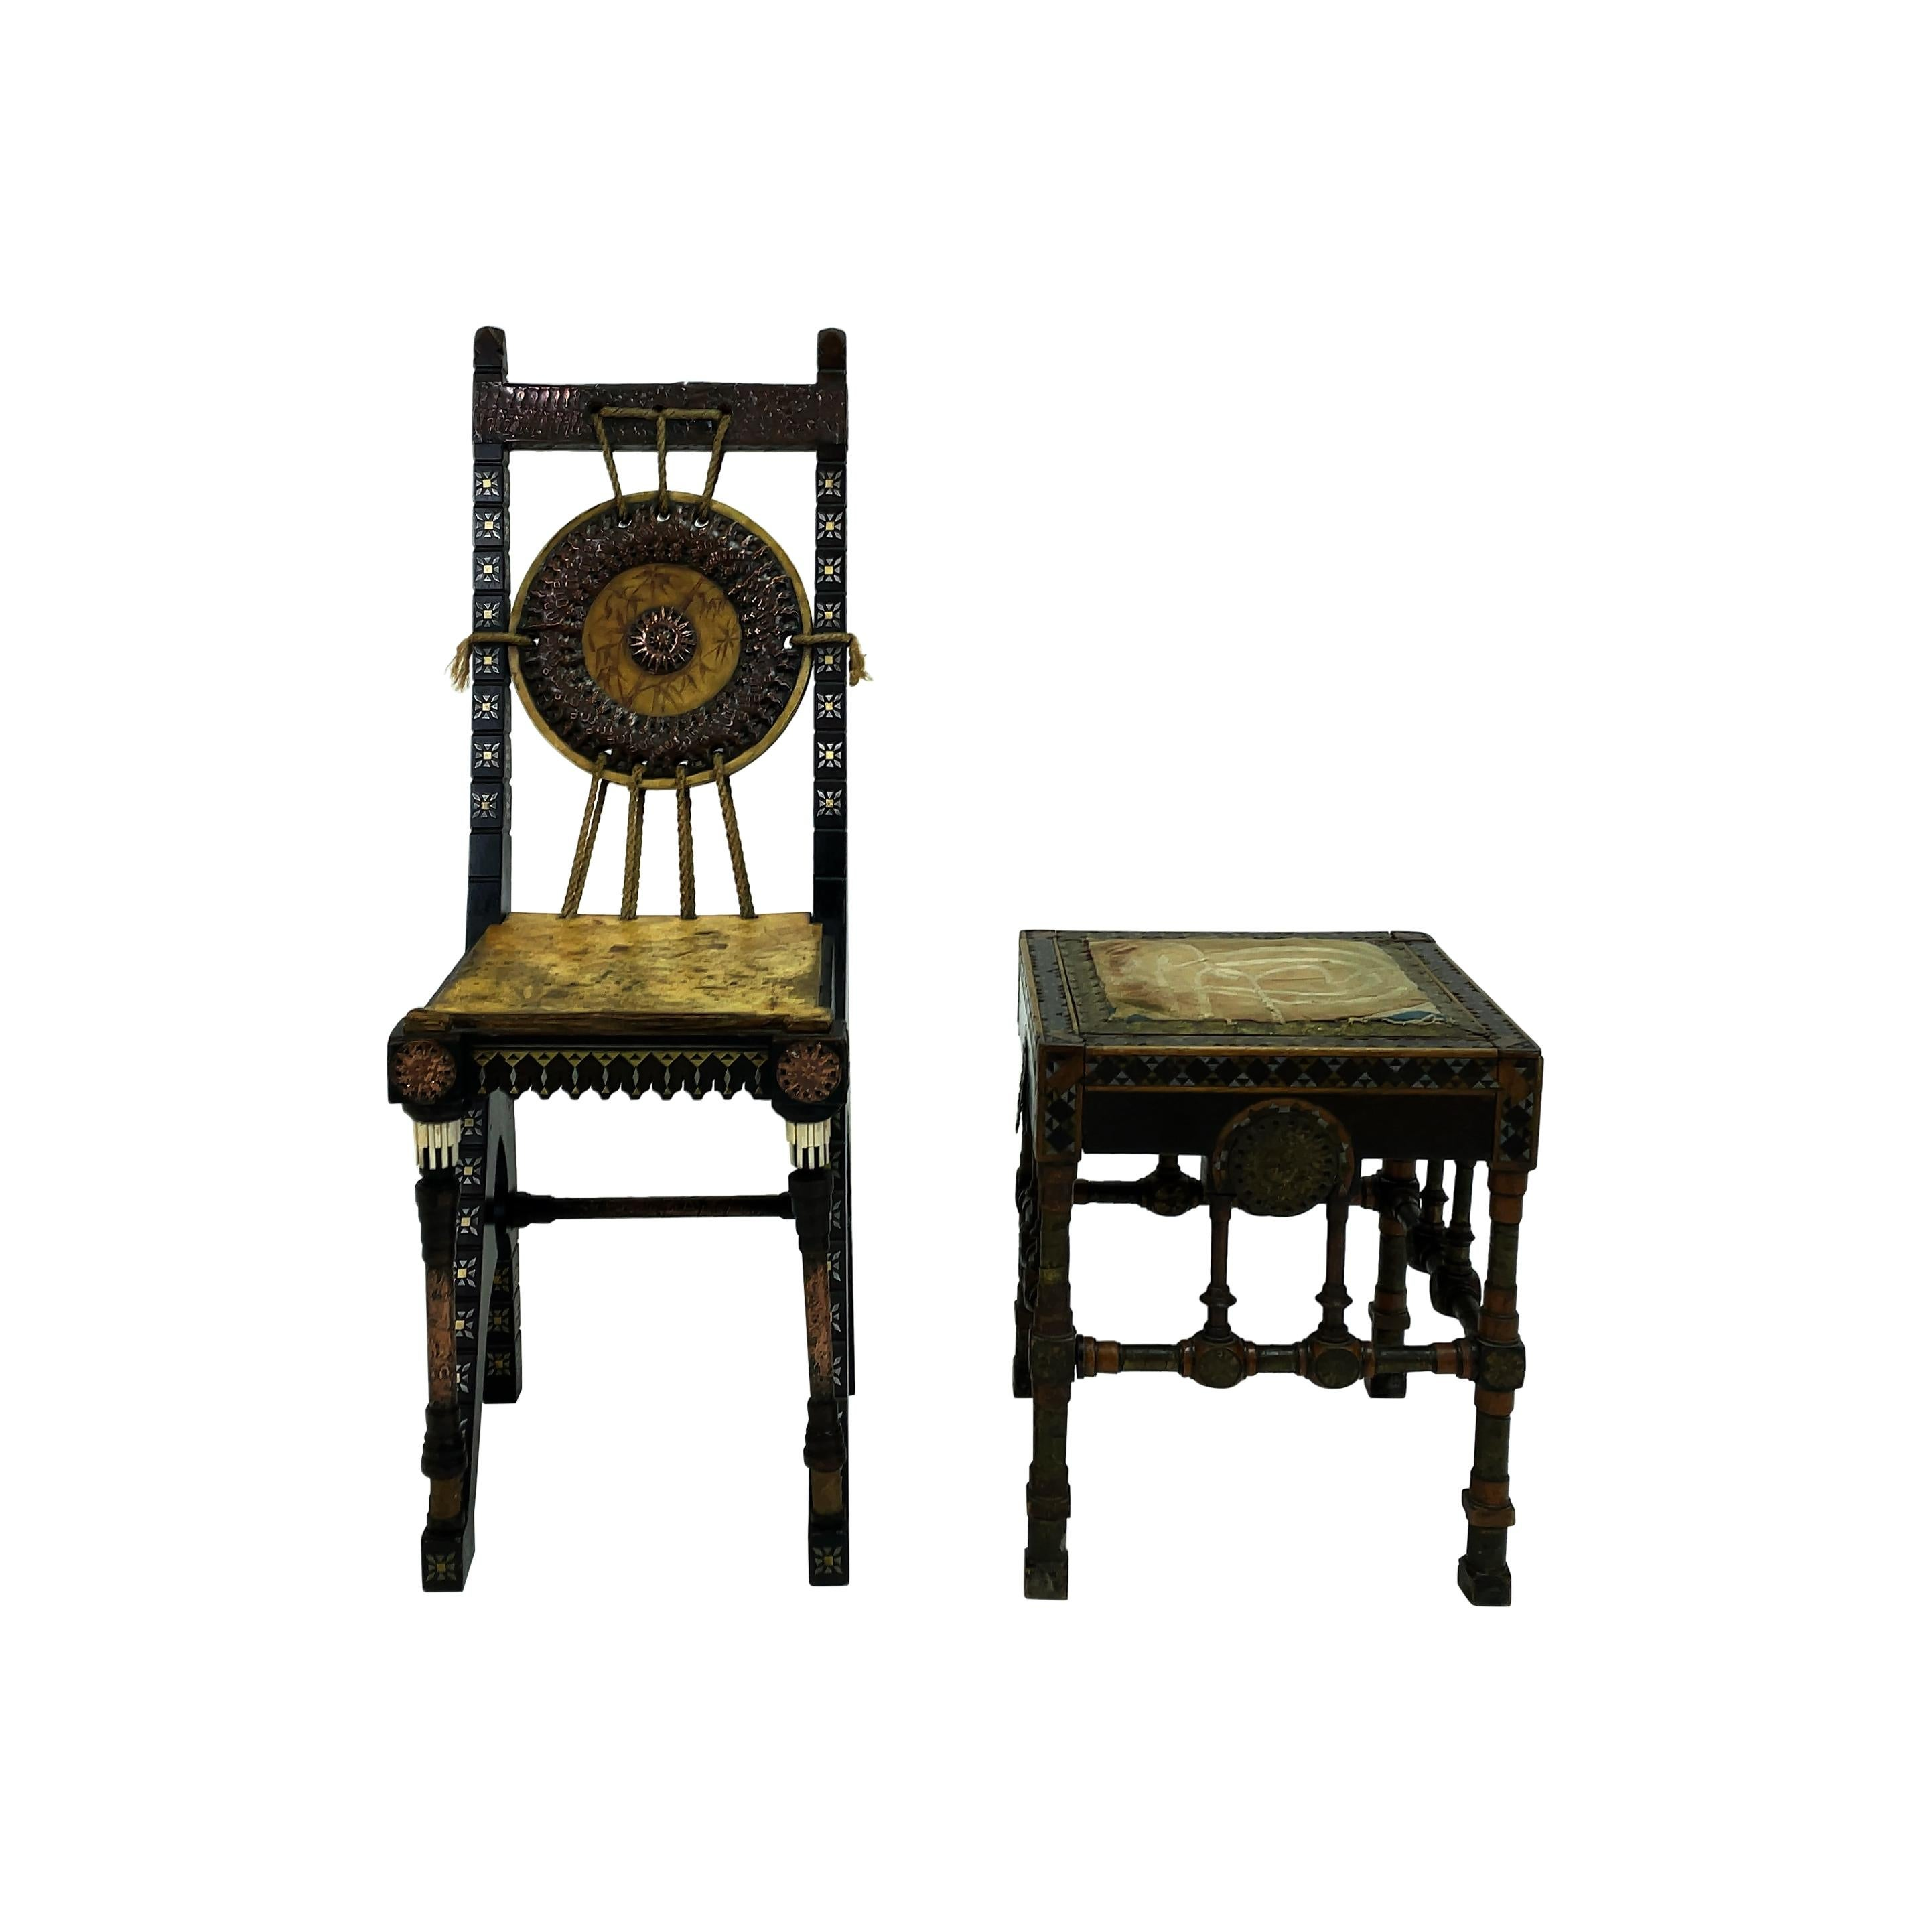 Art Nouveau Small Chair and Stool from Carlo Bugatti, Italy, Early 20th Century